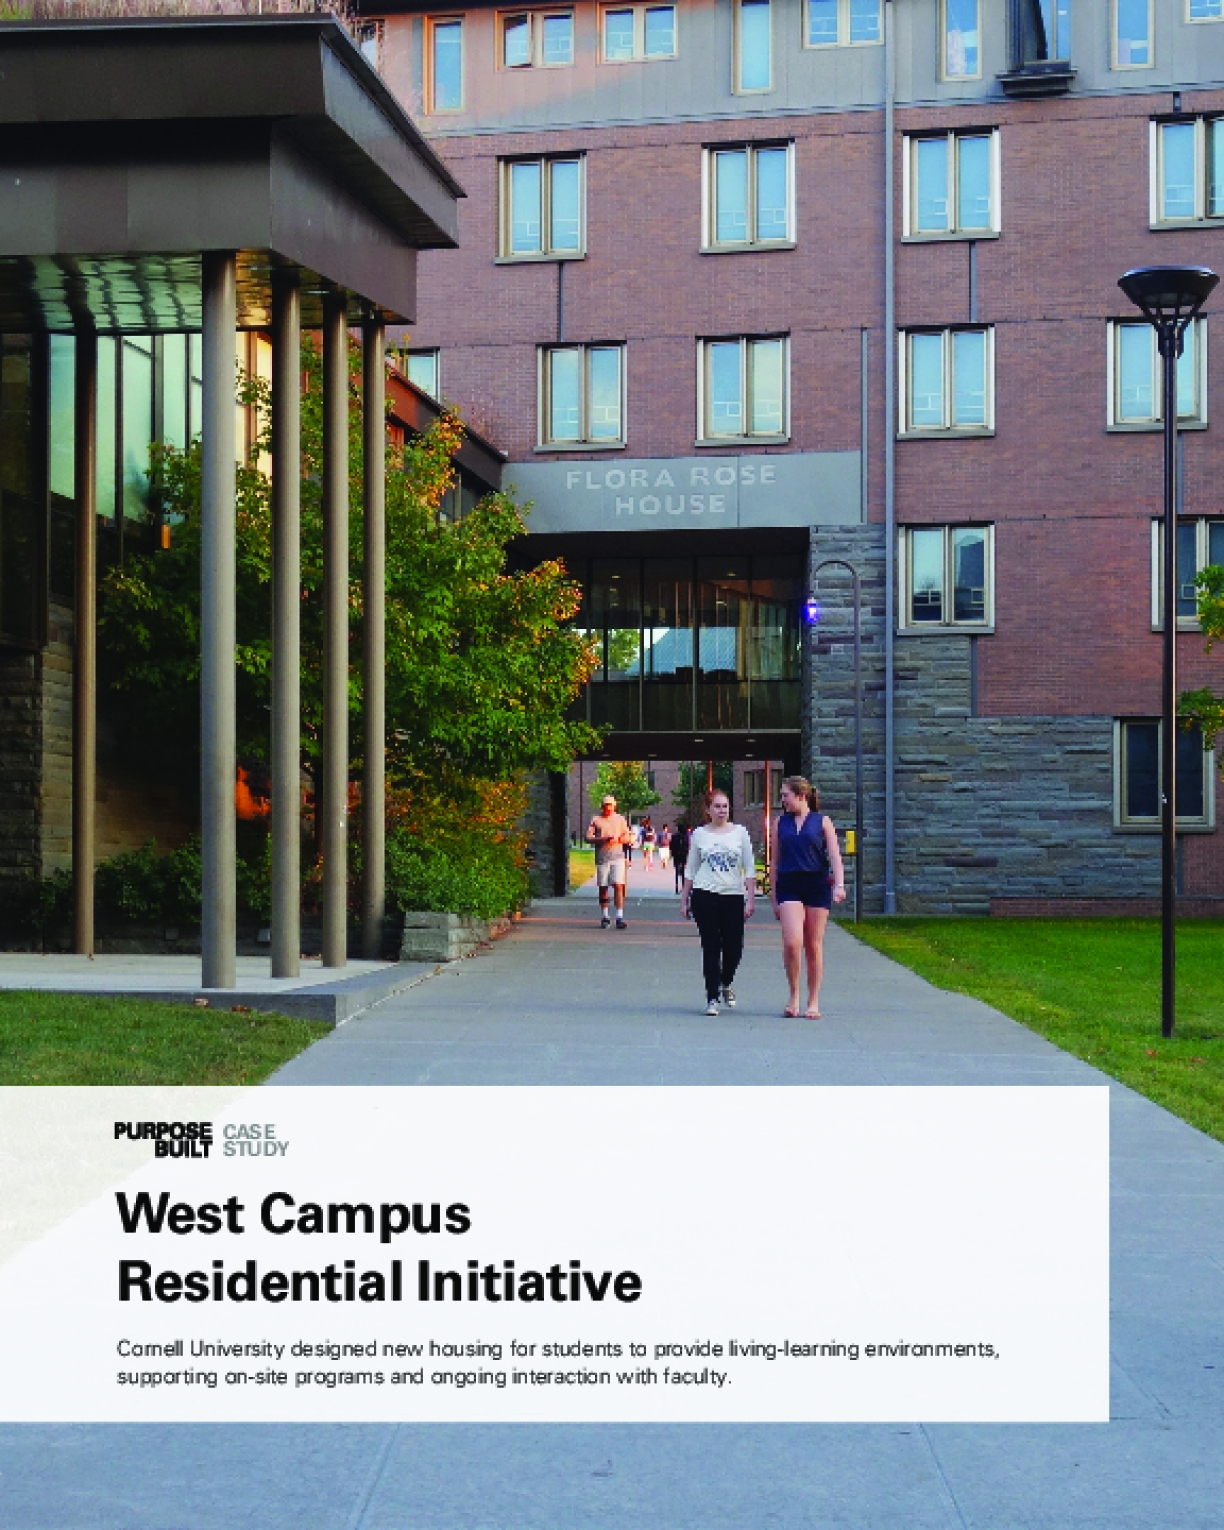 Purpose Built Case Study: West Campus Residential Initiative